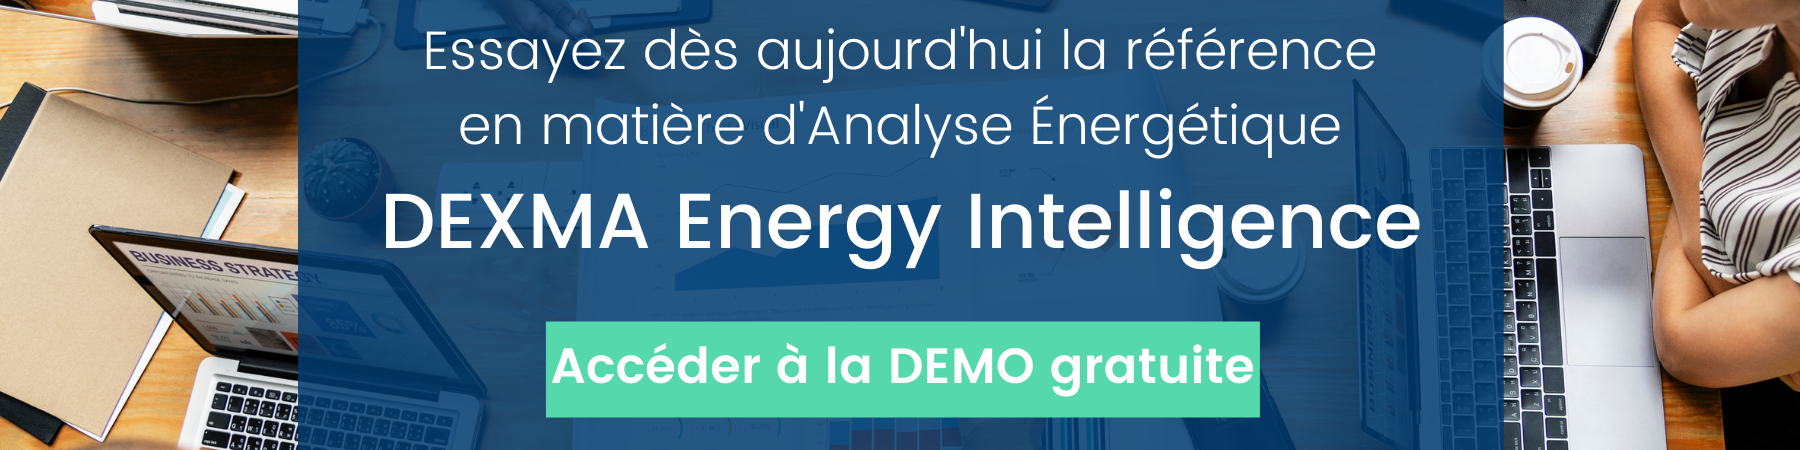 Demo DEXMA Energy Intelligence